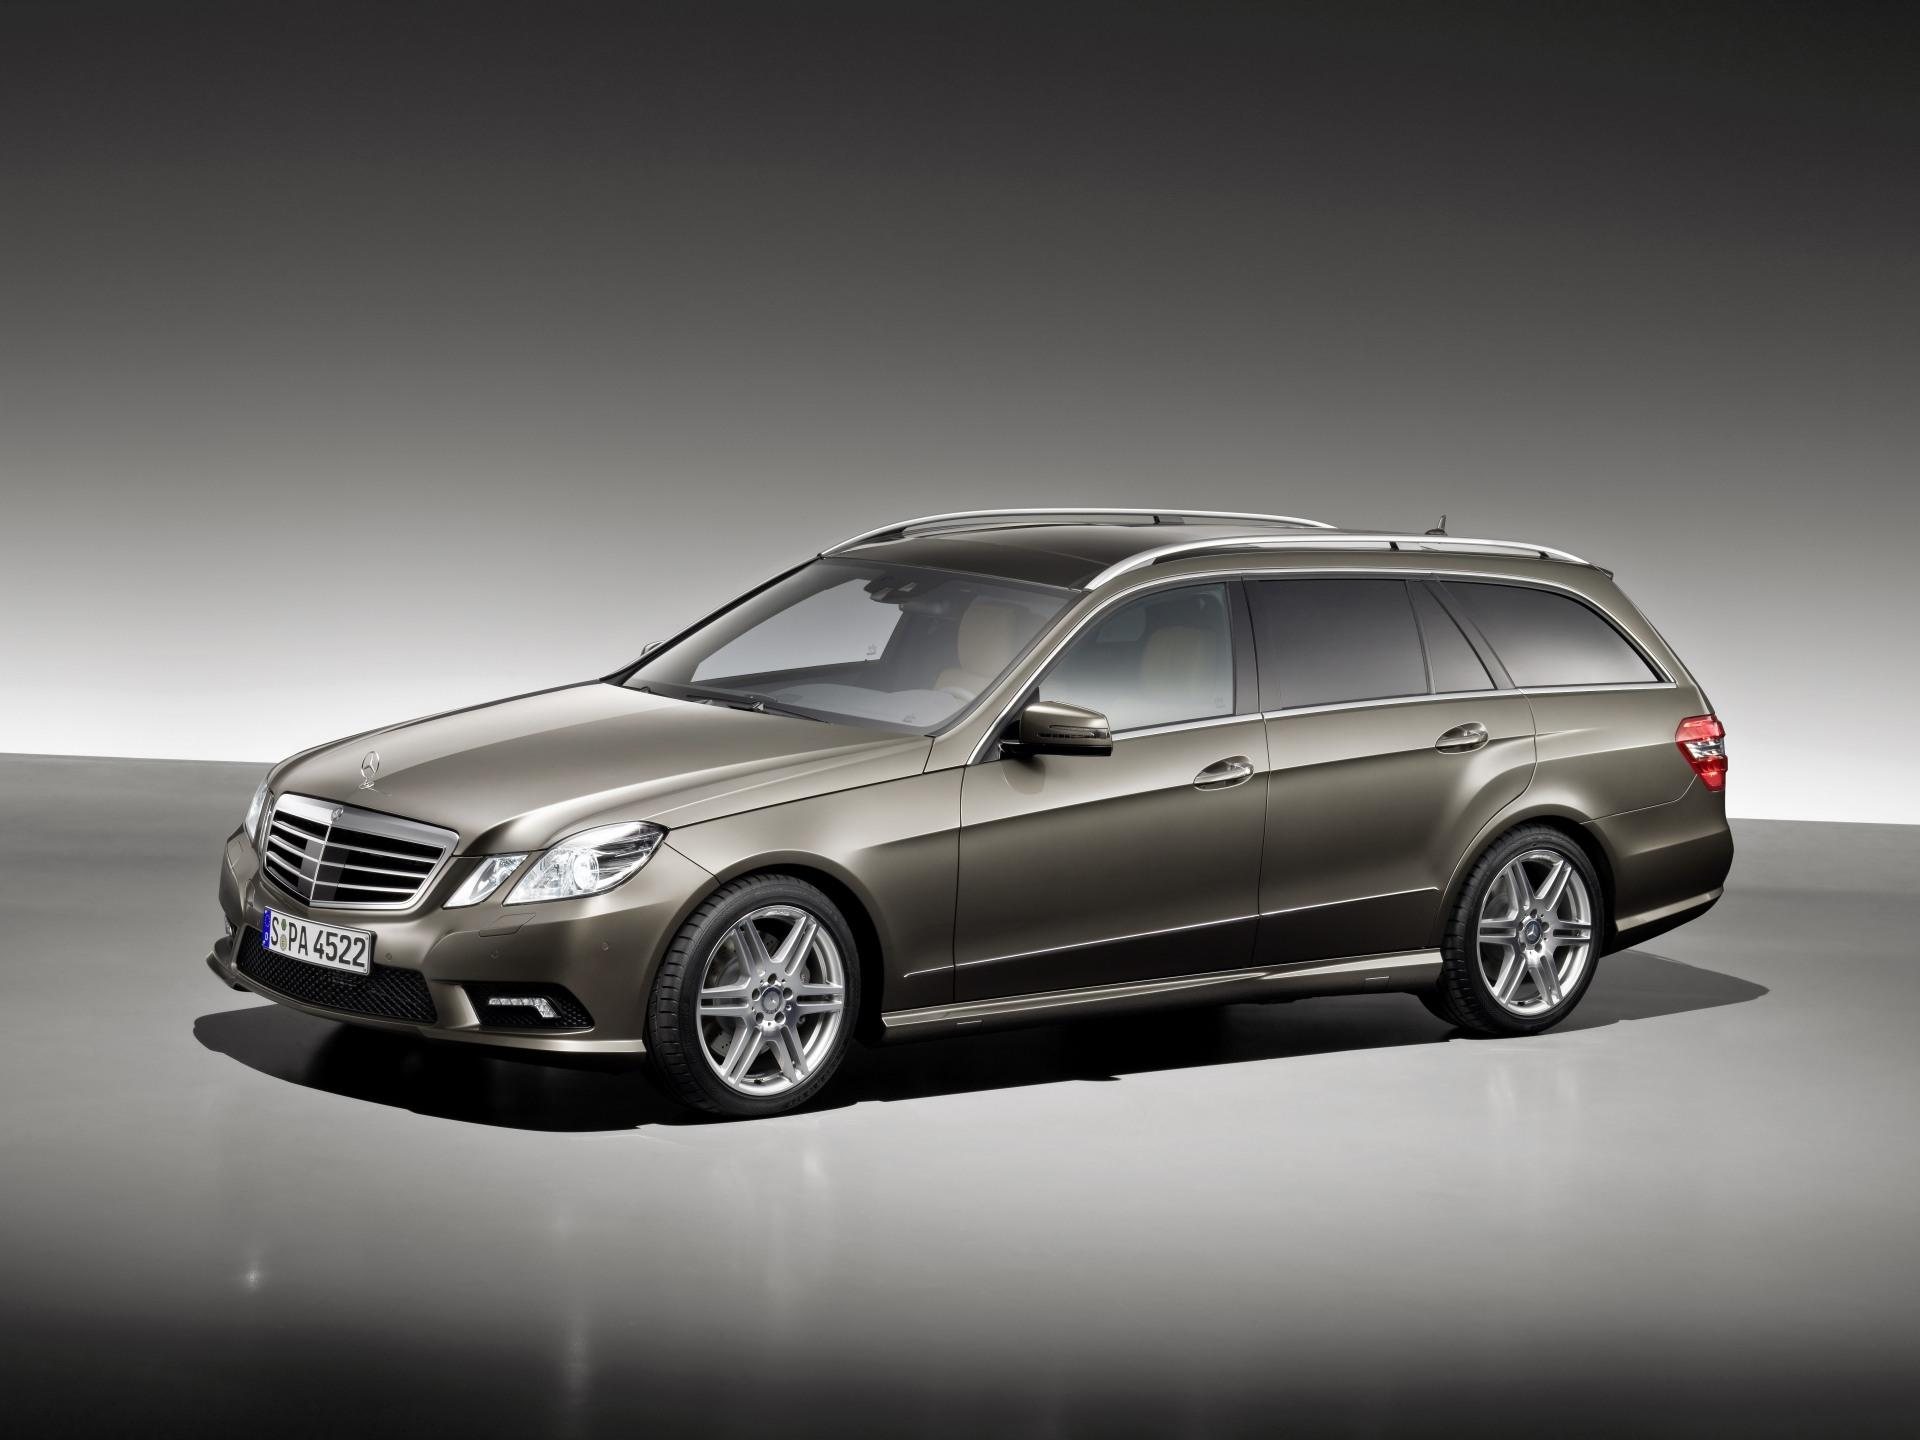 2010 mercedes benz e350 4matic. Black Bedroom Furniture Sets. Home Design Ideas